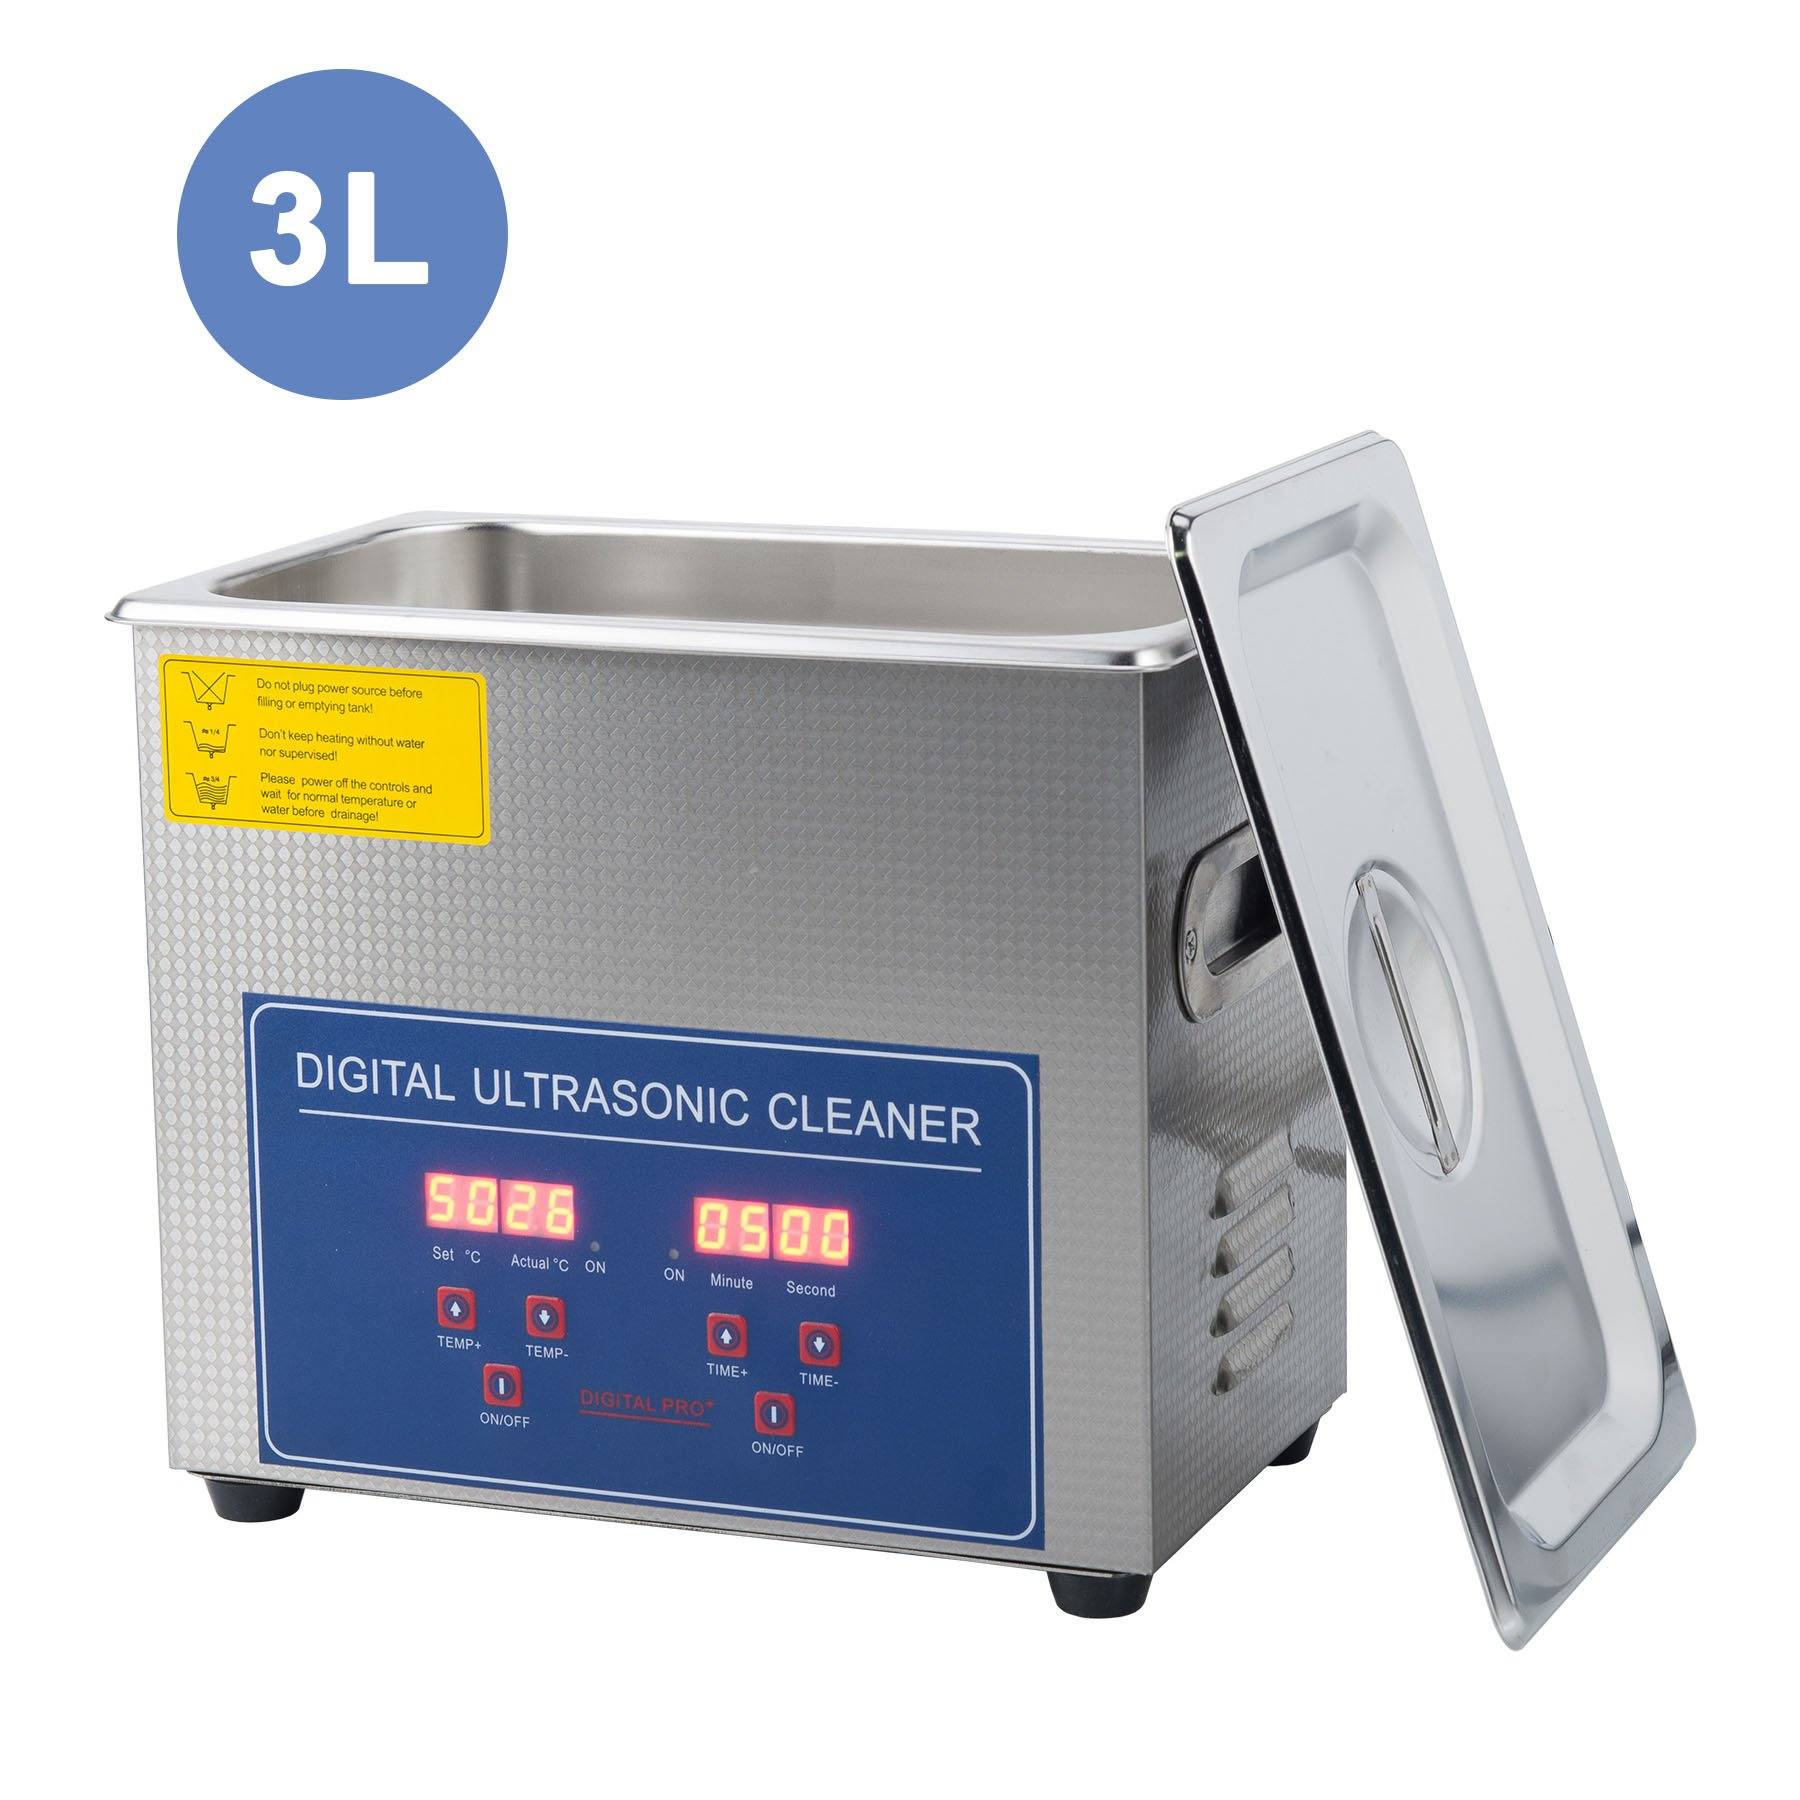 CO-Z 3L Professional Ultrasonic Cleaner with Digital Timer&Heater for Cleaning Jewelry Glasses Watch Dentures Small Parts Circuit Board Dental Instrument, Commercial Electric Ultrasound Clean Machine